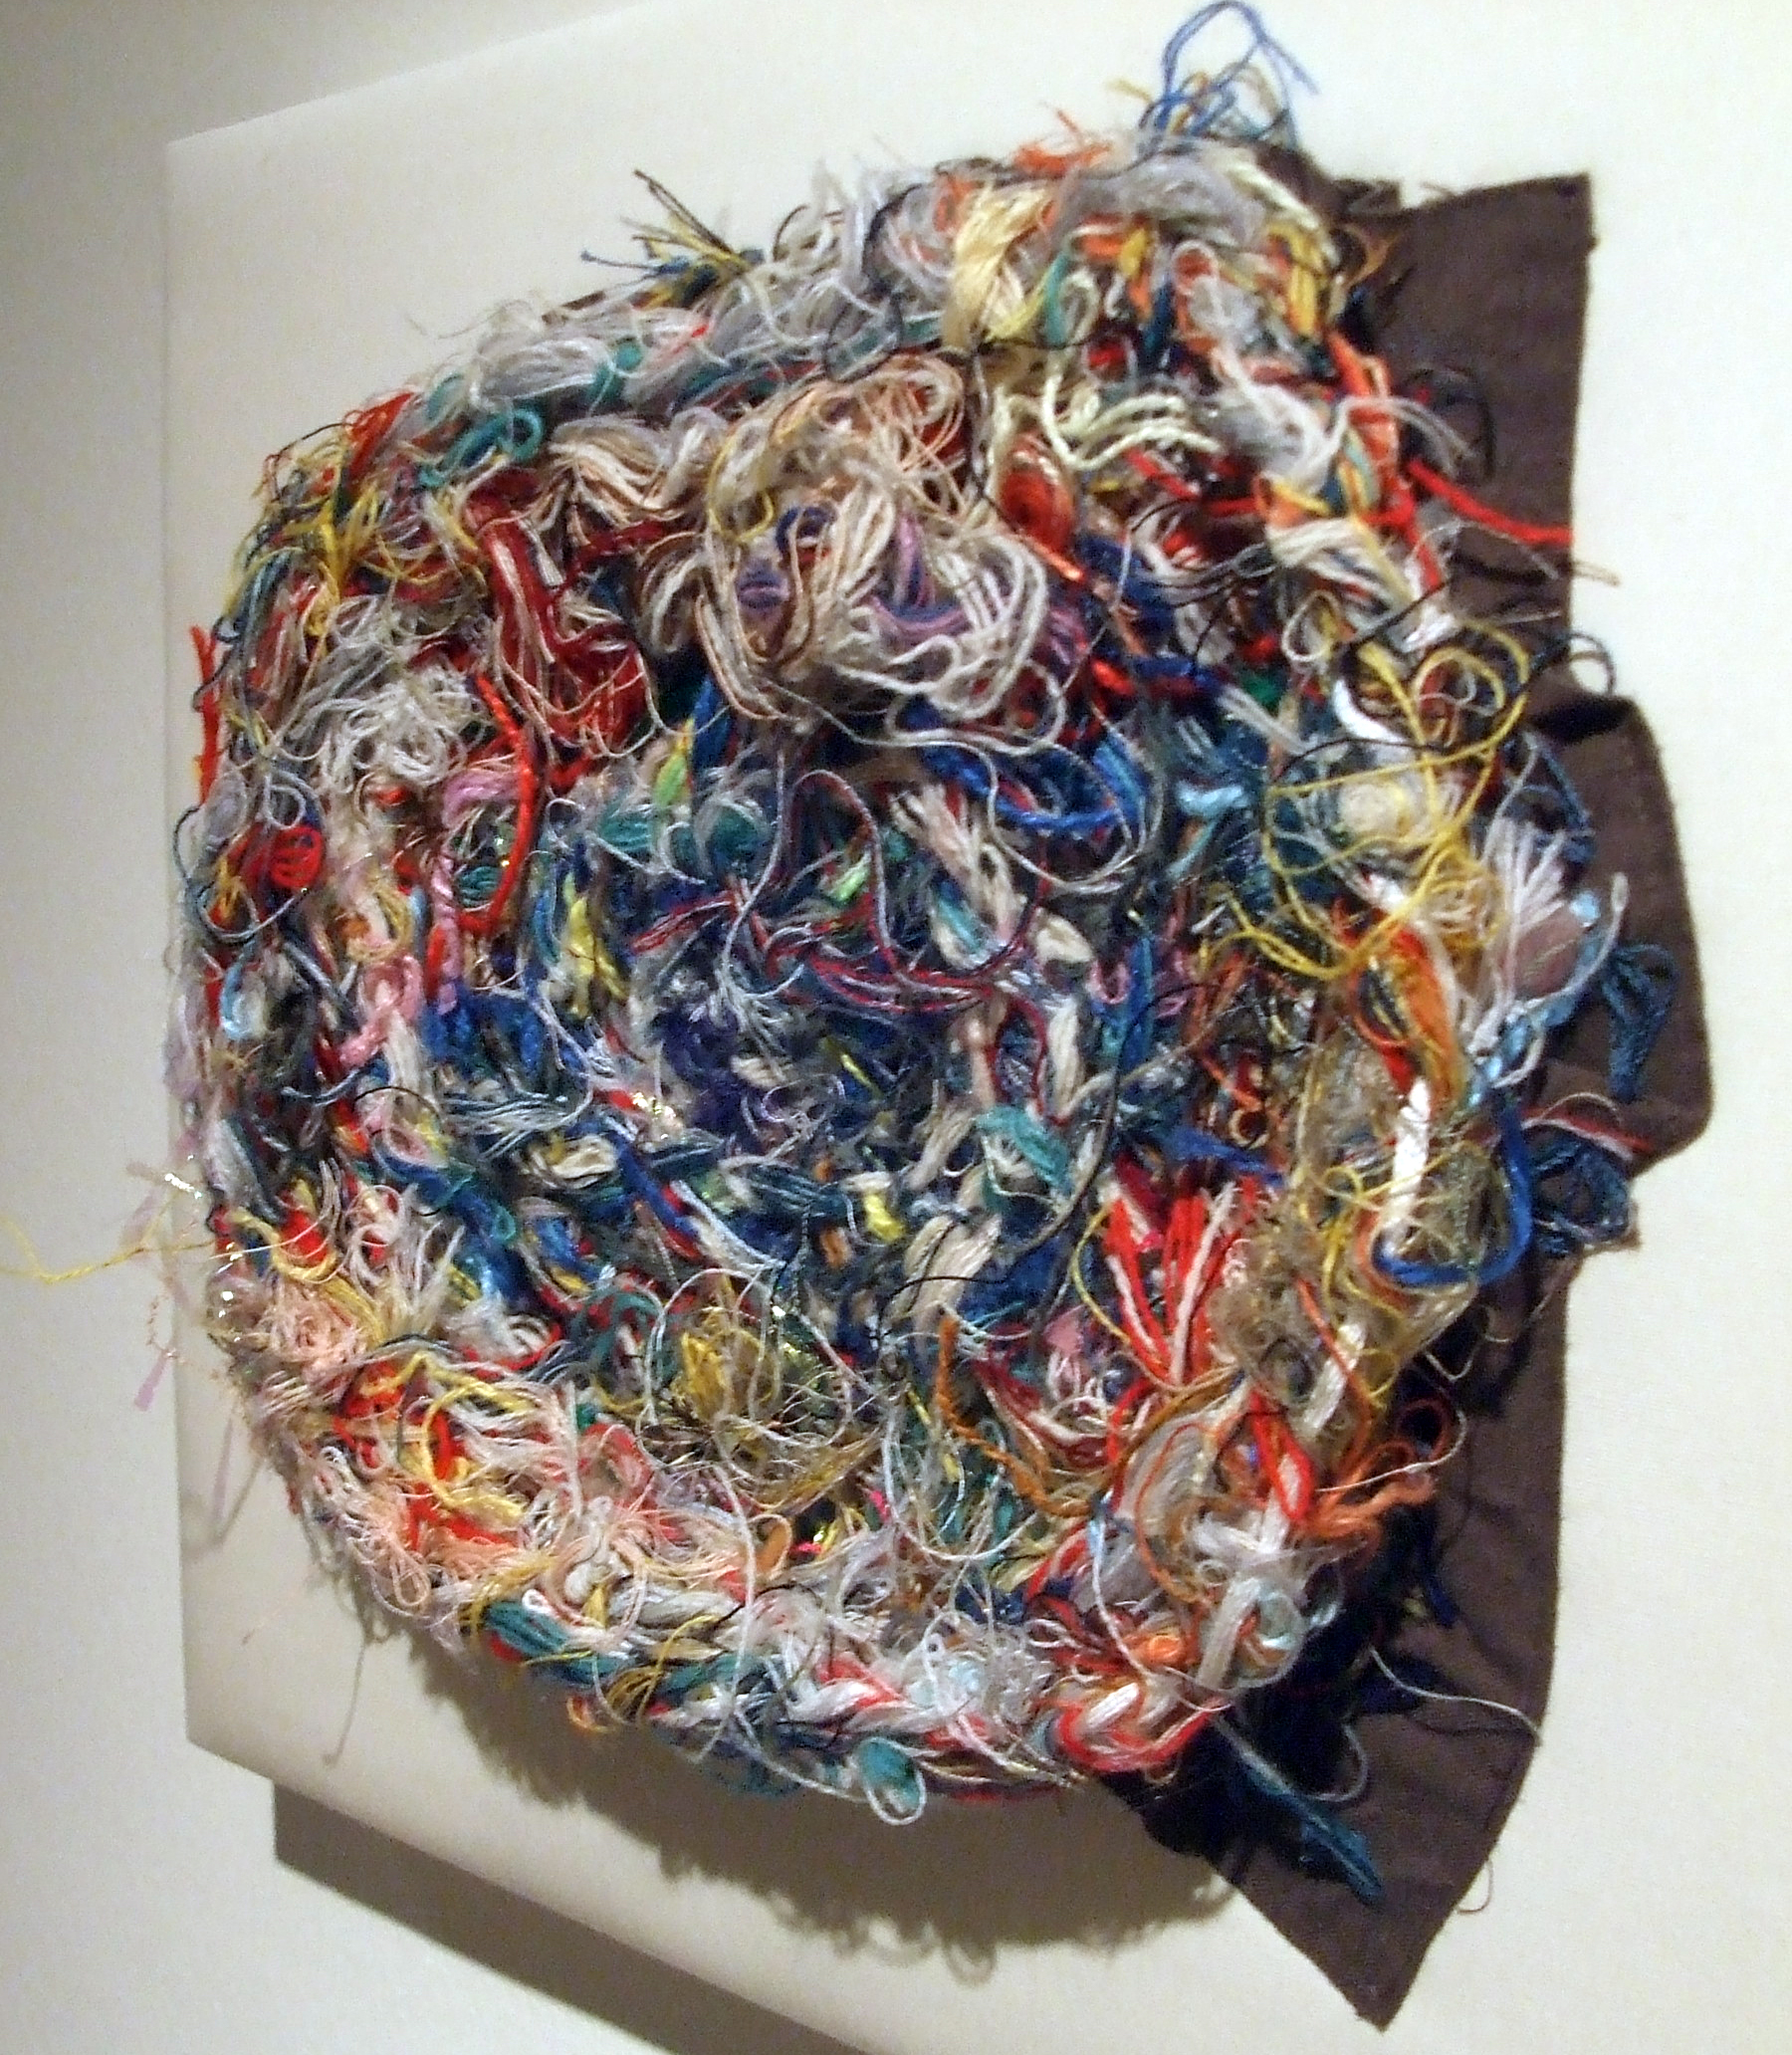 Satoshi Morita, Untitled, undated, wool, acrylic, cotton yarns, cotton. Social Welfare Corporation, Yamanami Atelier